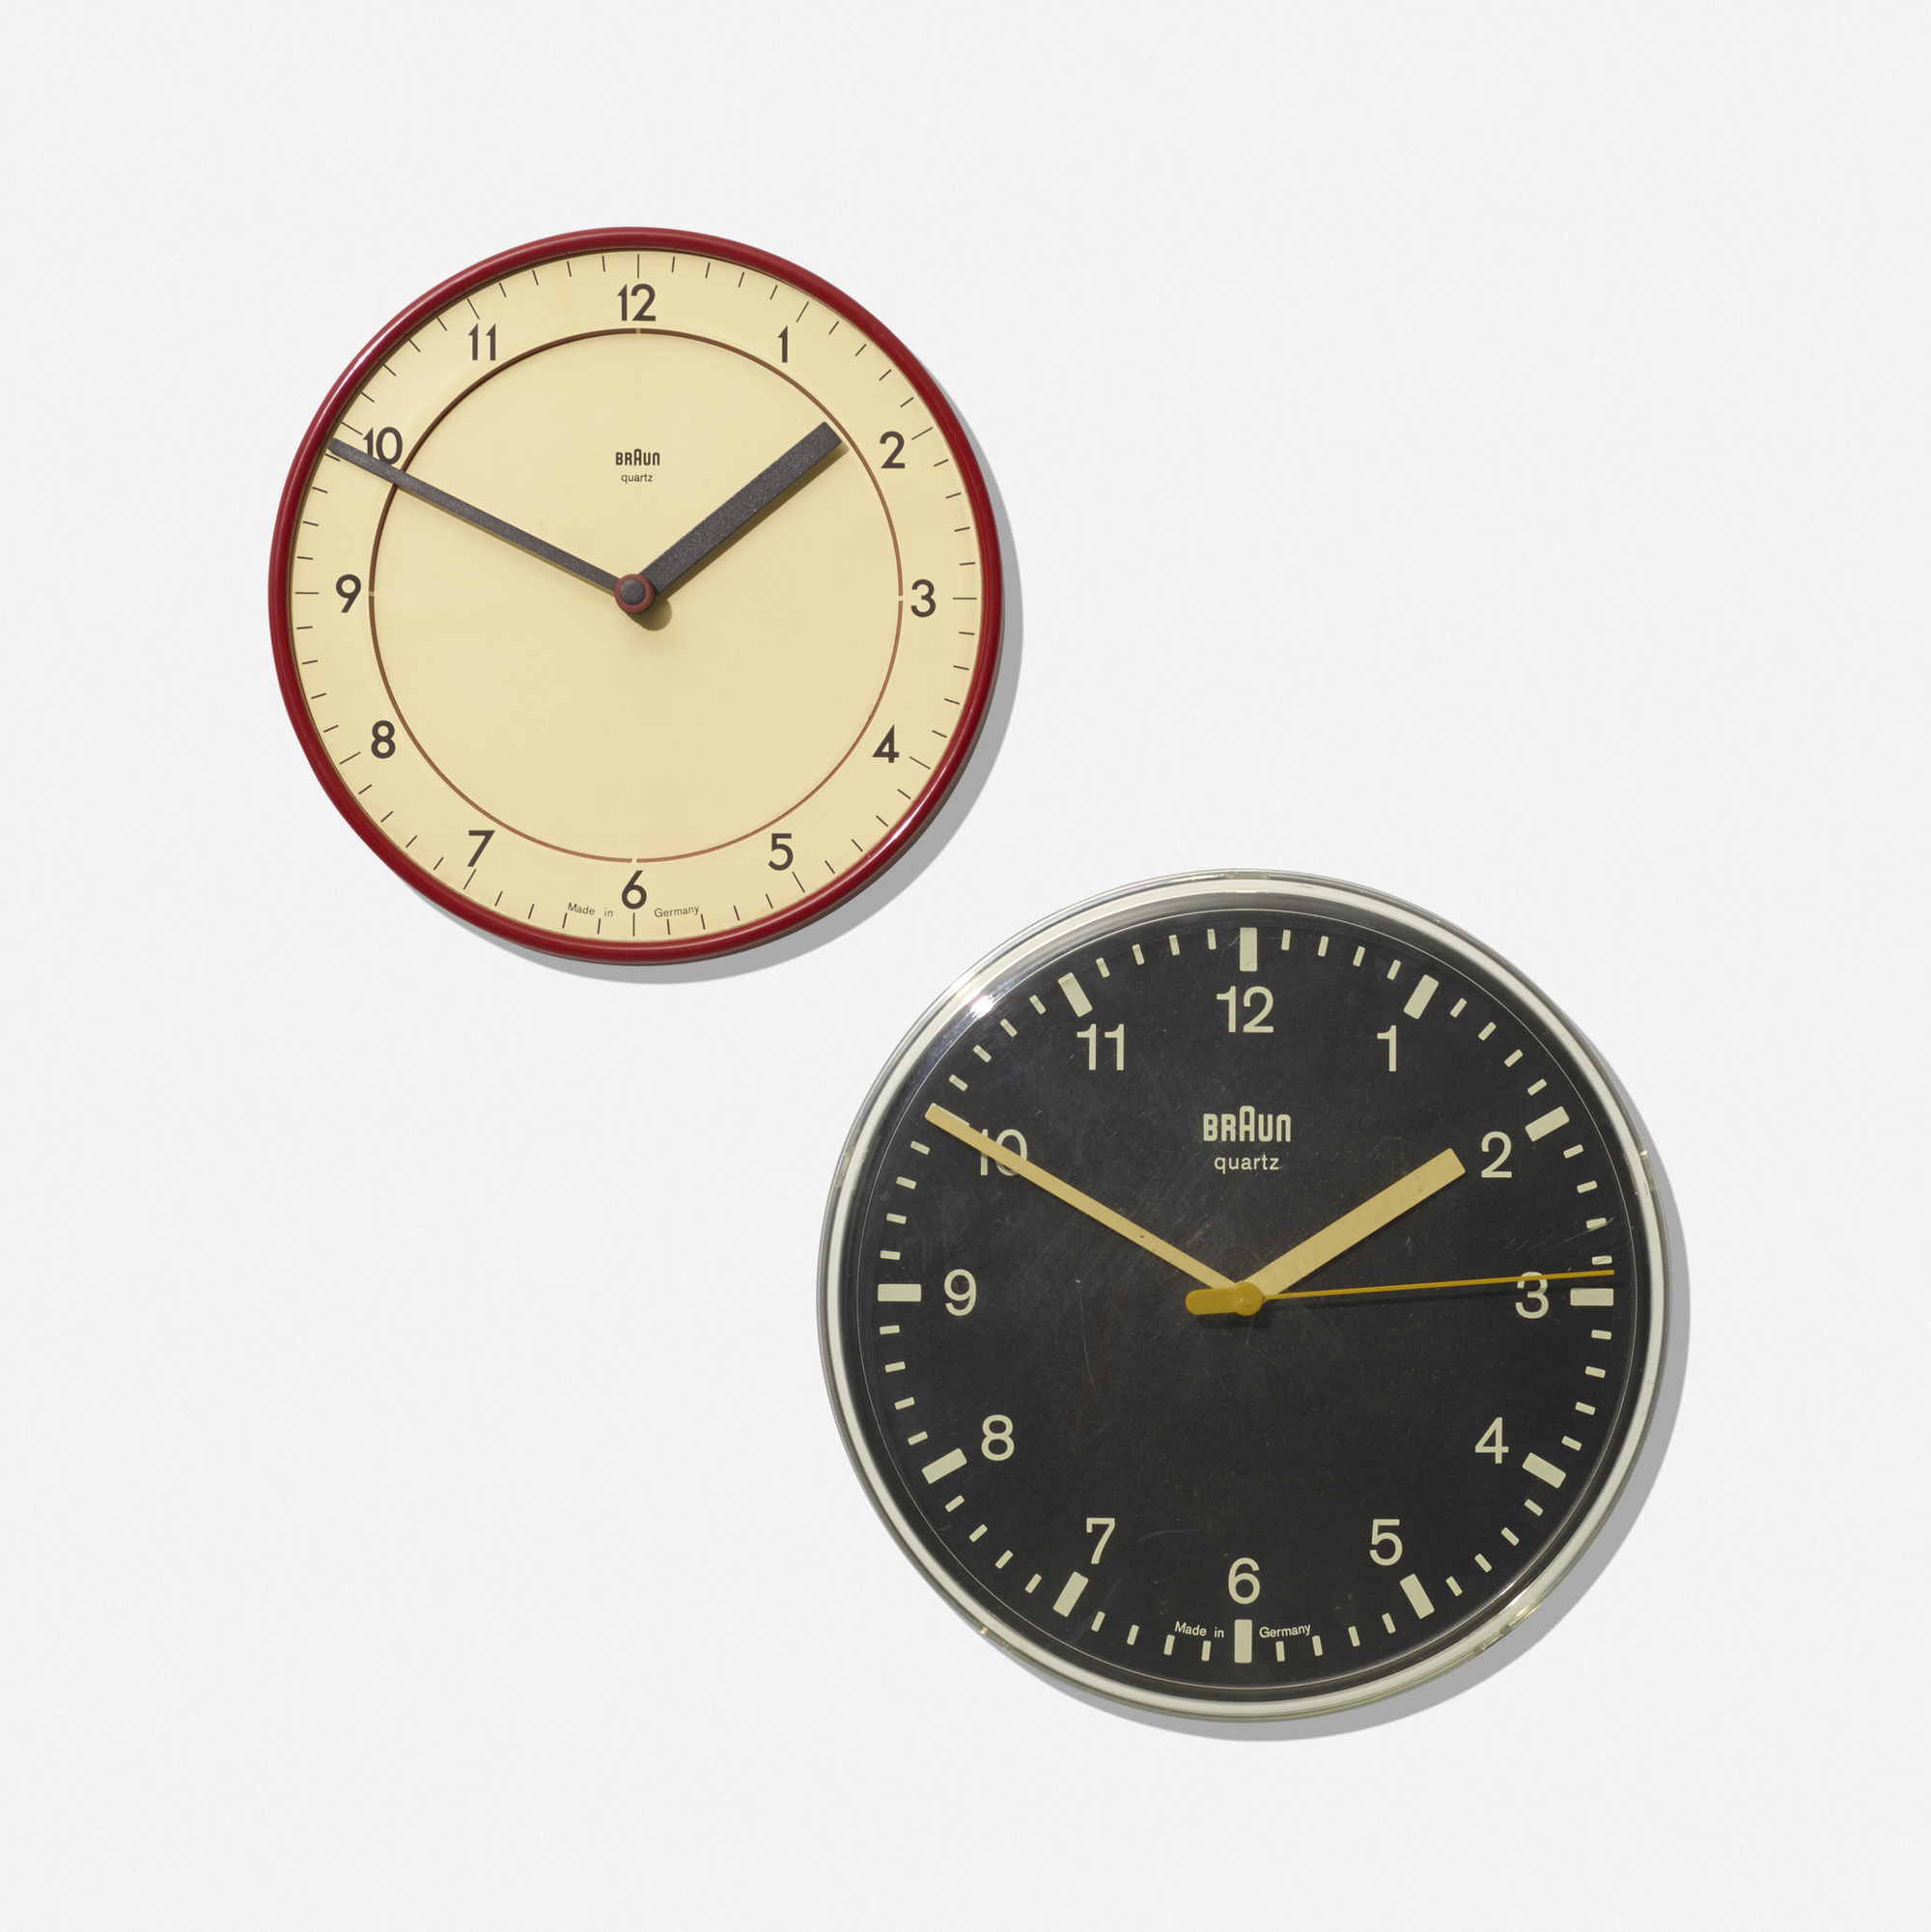 151: Dieter Rams and Dietrich Lubs / wall clocks, set of two (1 of 1)